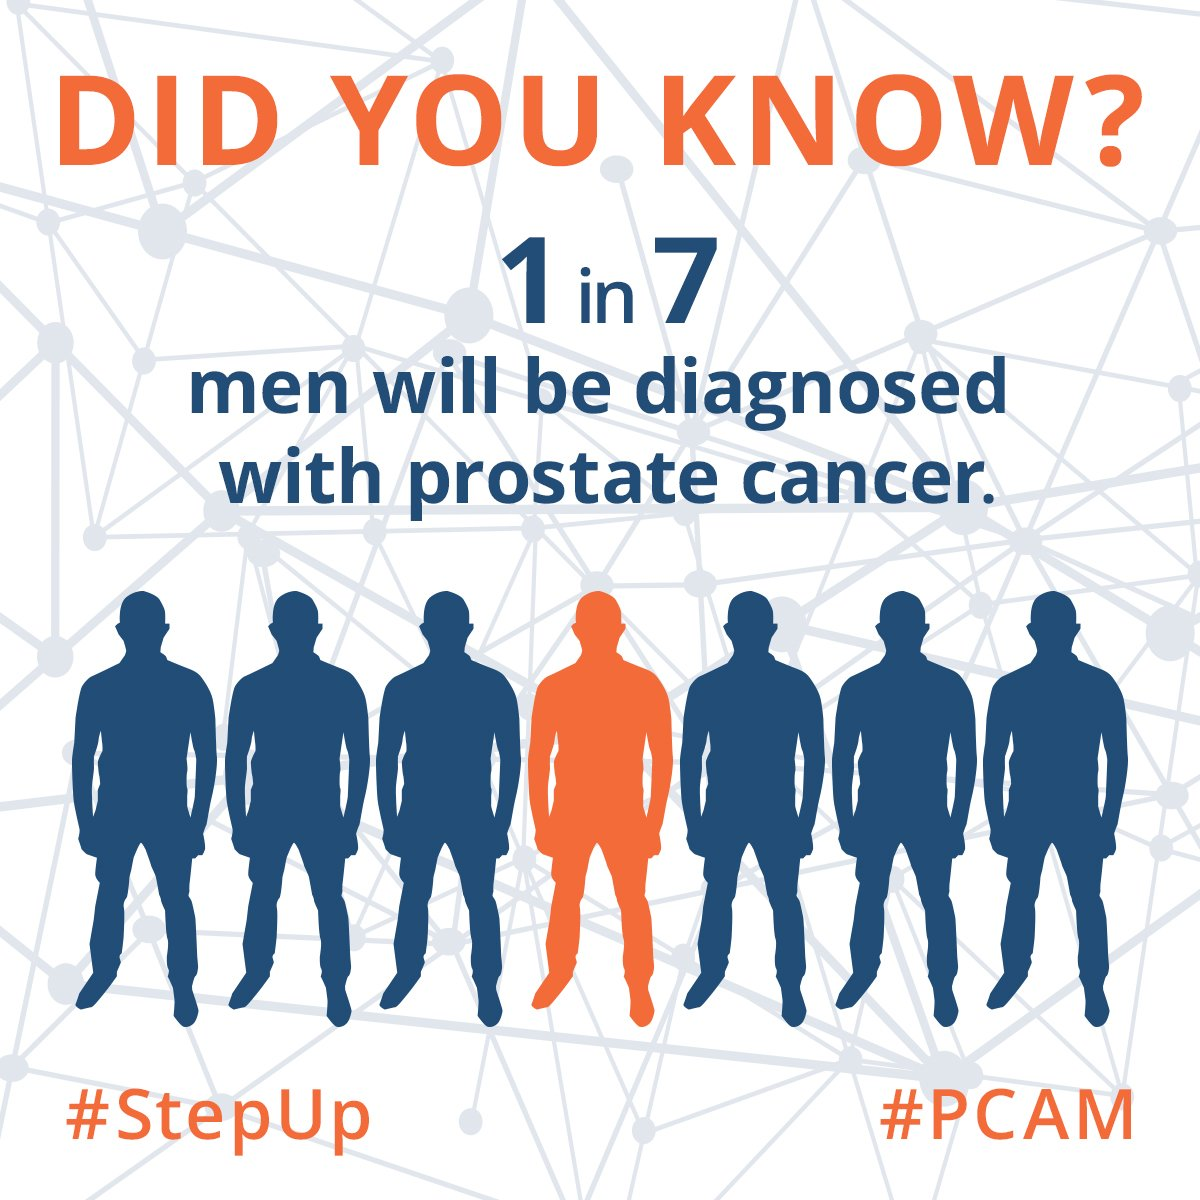 1 in 7 men will be diagnosed with PCa. #StepUp for Blue this #PCAM to support the 3 million US men w/ this disease. https://t.co/OHEkxuc32Y